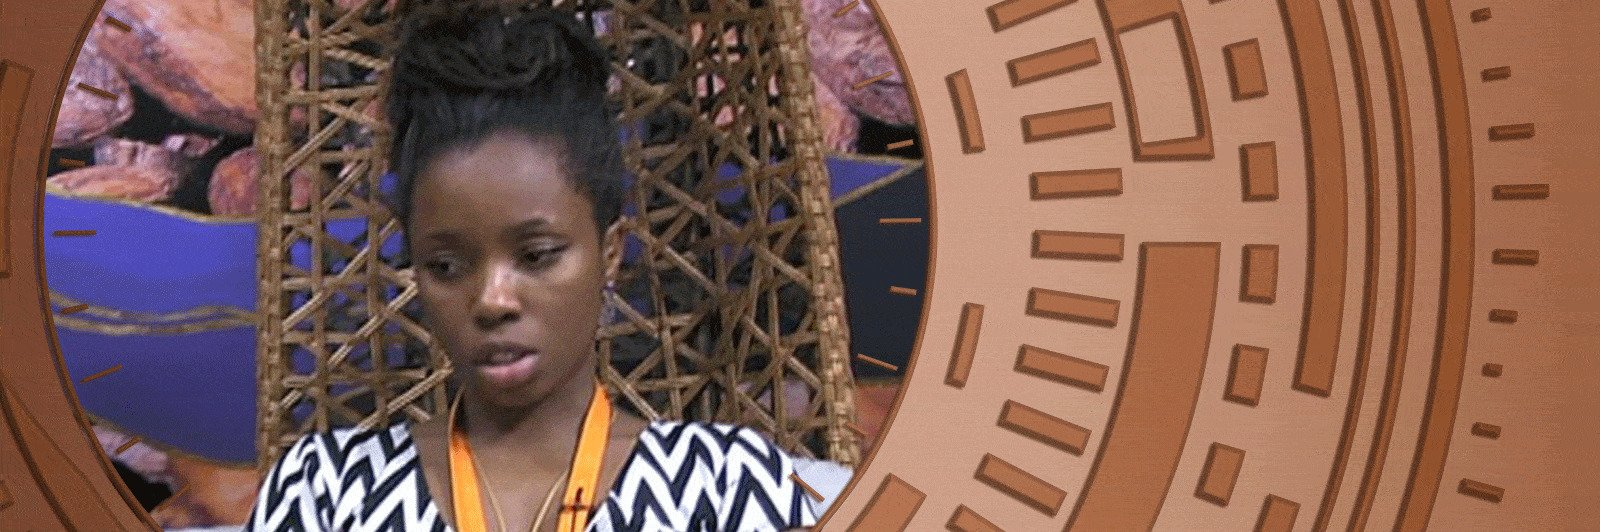 BBNaija 2018: Biggie touches base with the Housemates about their new Task.